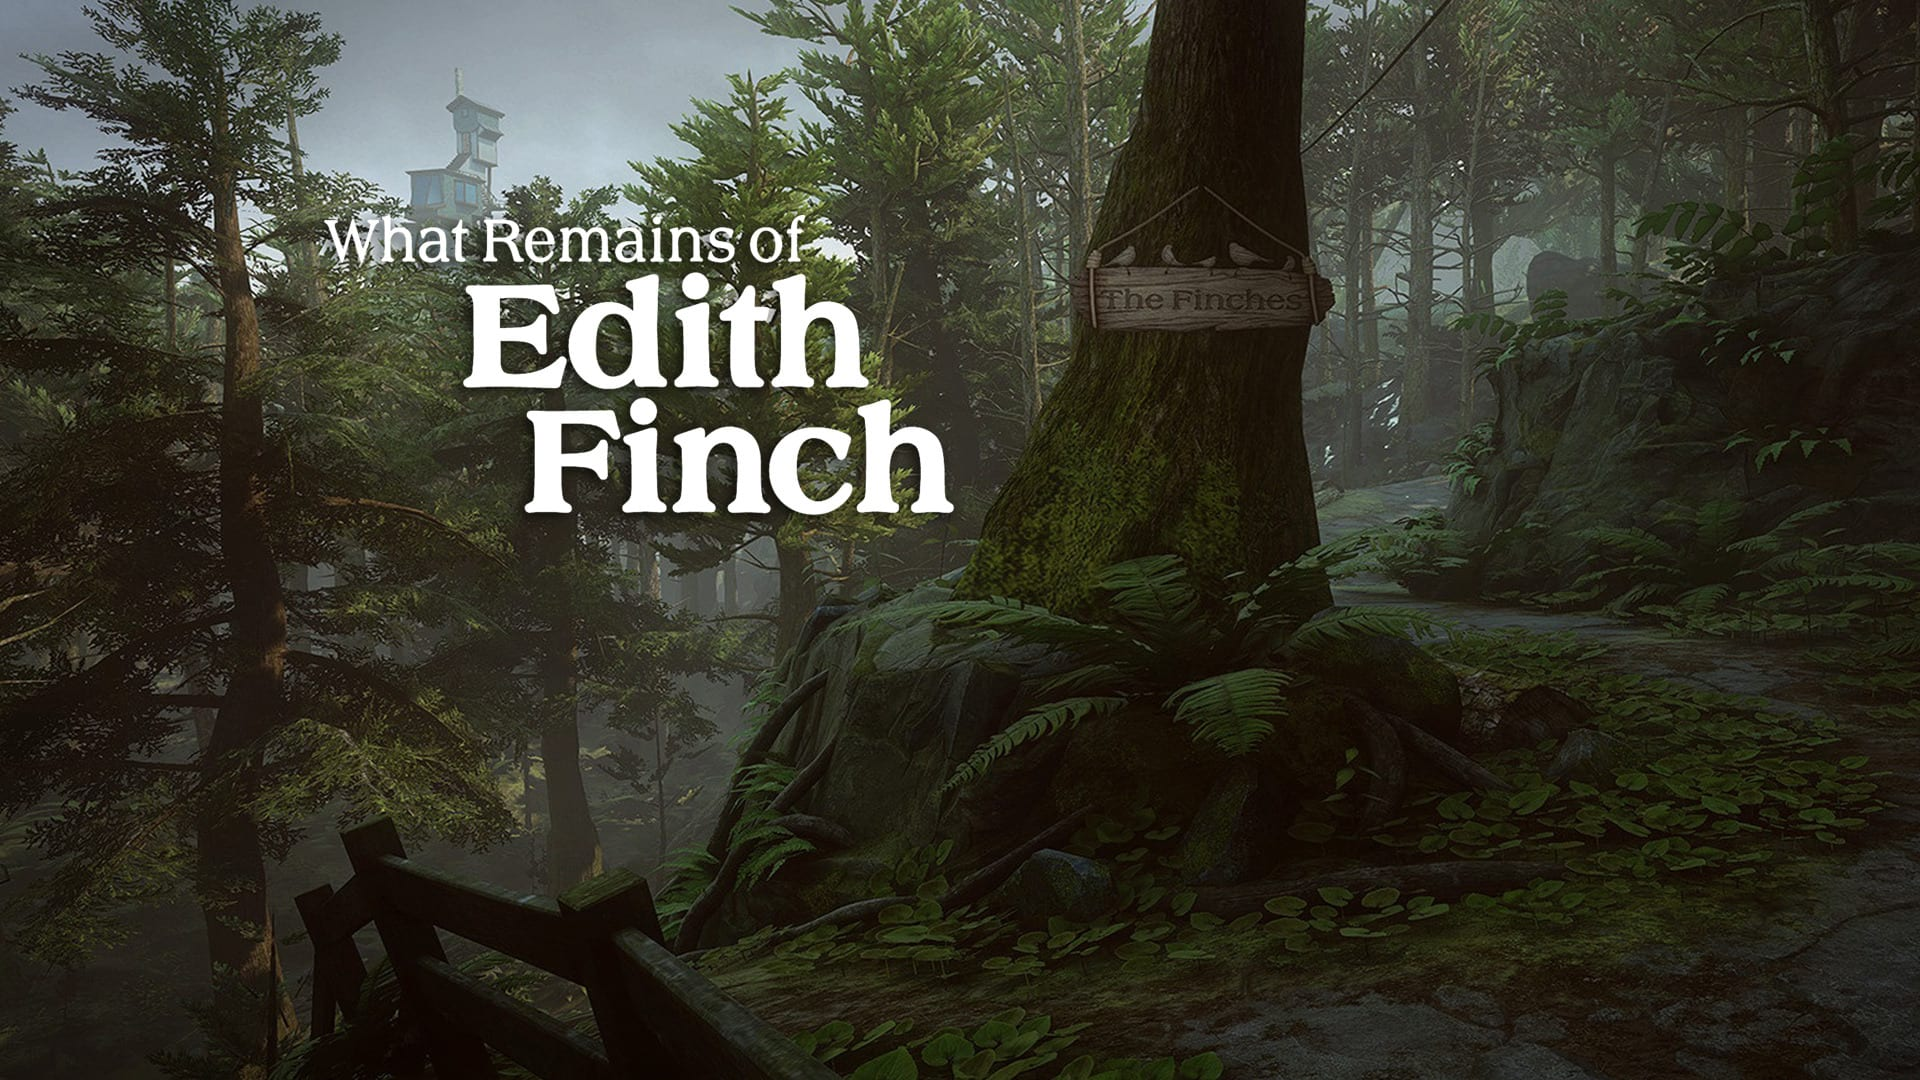 What Remains of Edith Finch title